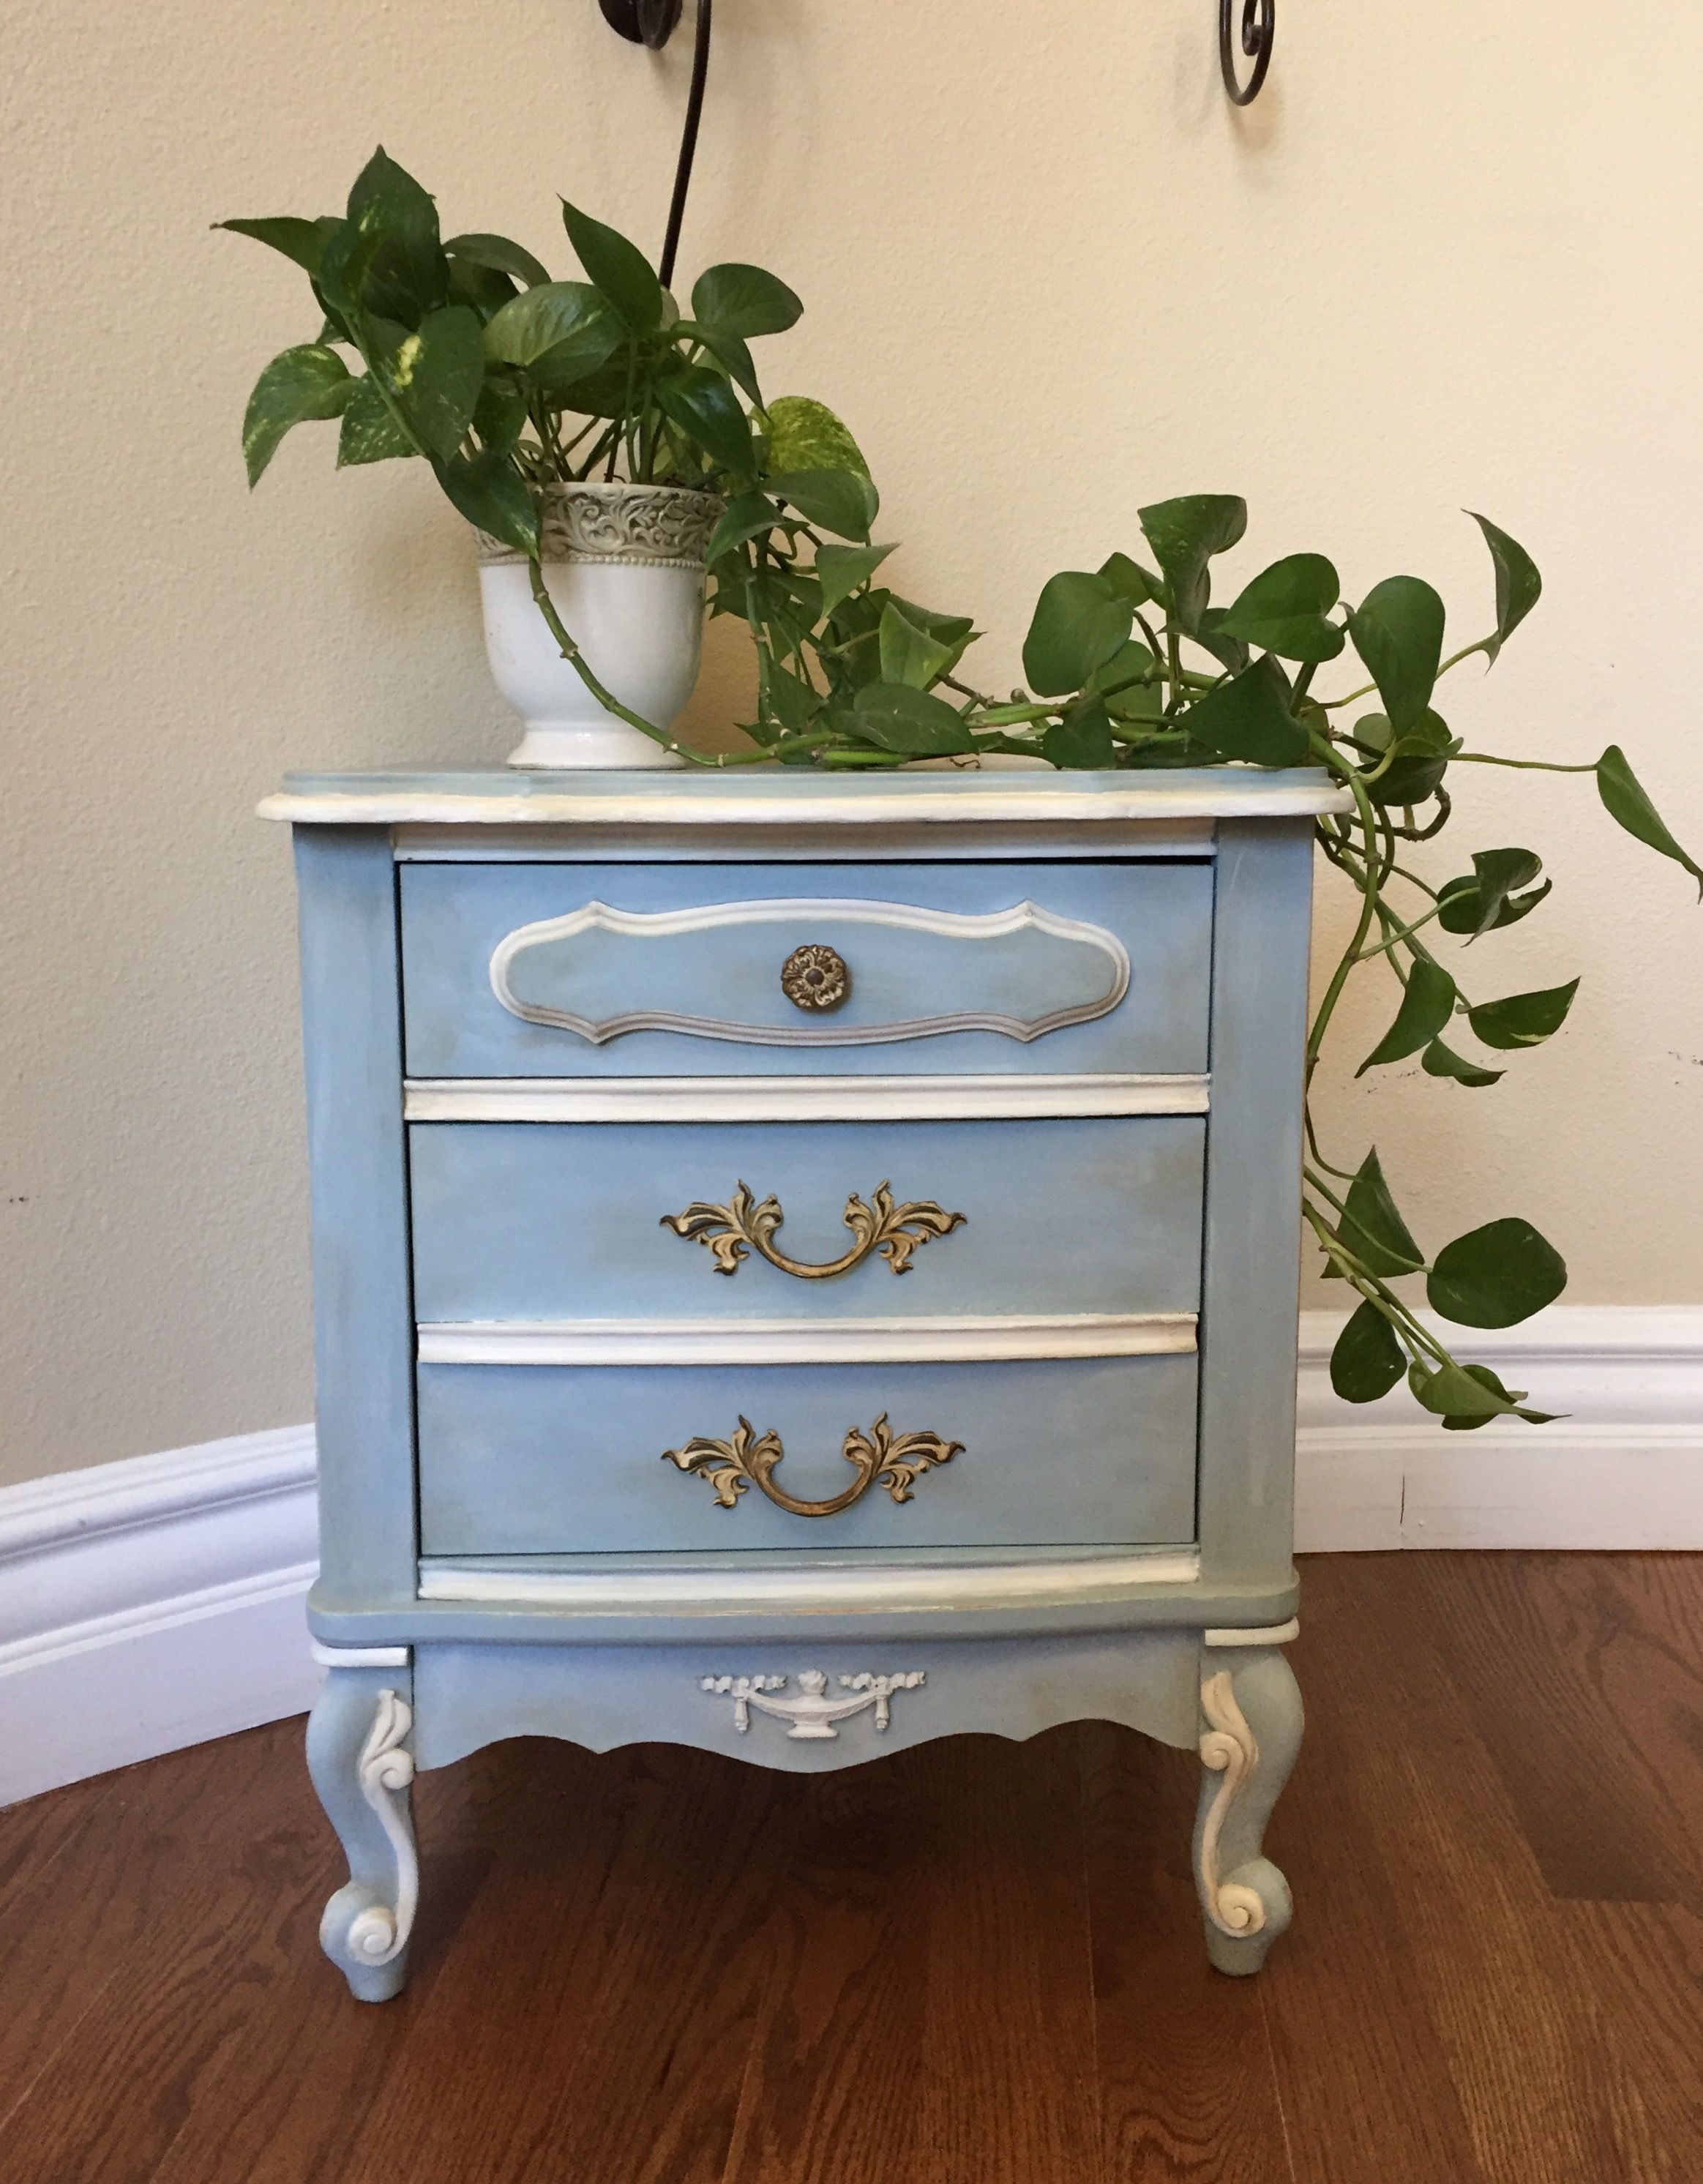 French Provincial Nightstand Chalk Painted In A Beautiful Blue And White French Painted Furniture Furniture Inspiration Painted Furniture